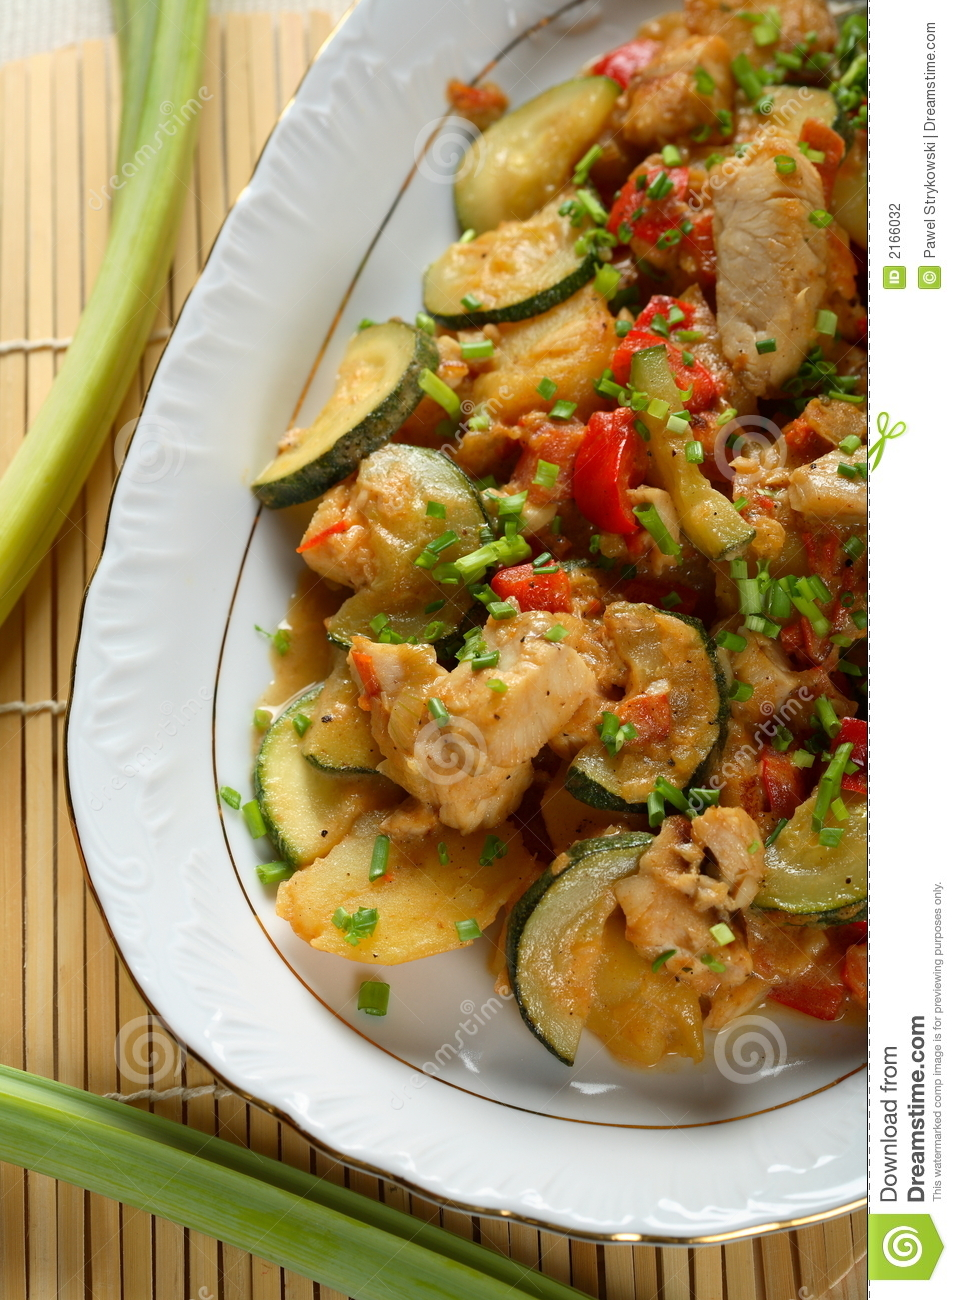 Fish with vegetables stock photography image 2166032 for What vegetables go with fish